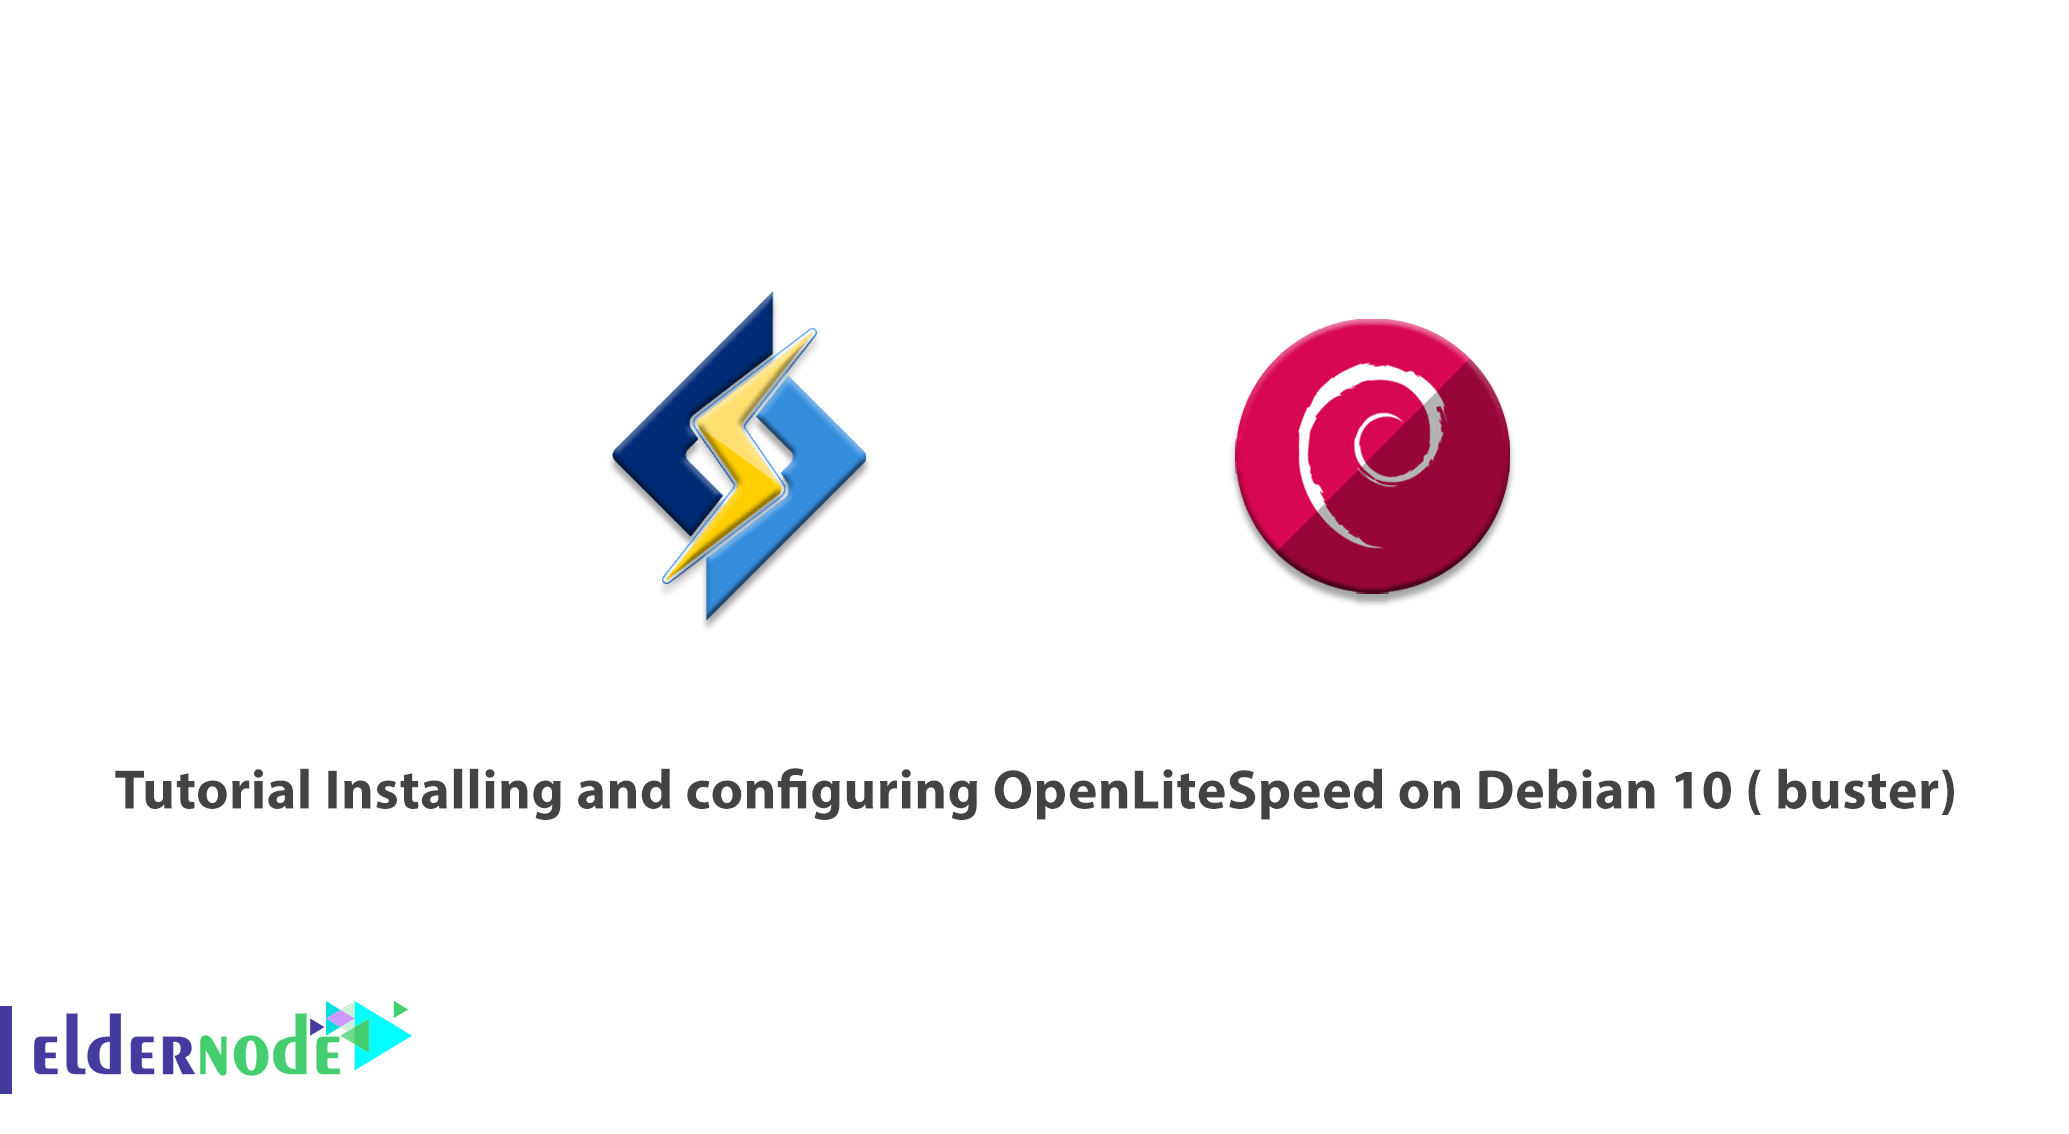 Tutorial Installing and configuring OpenLiteSpeed on Debian 10 ( buster)